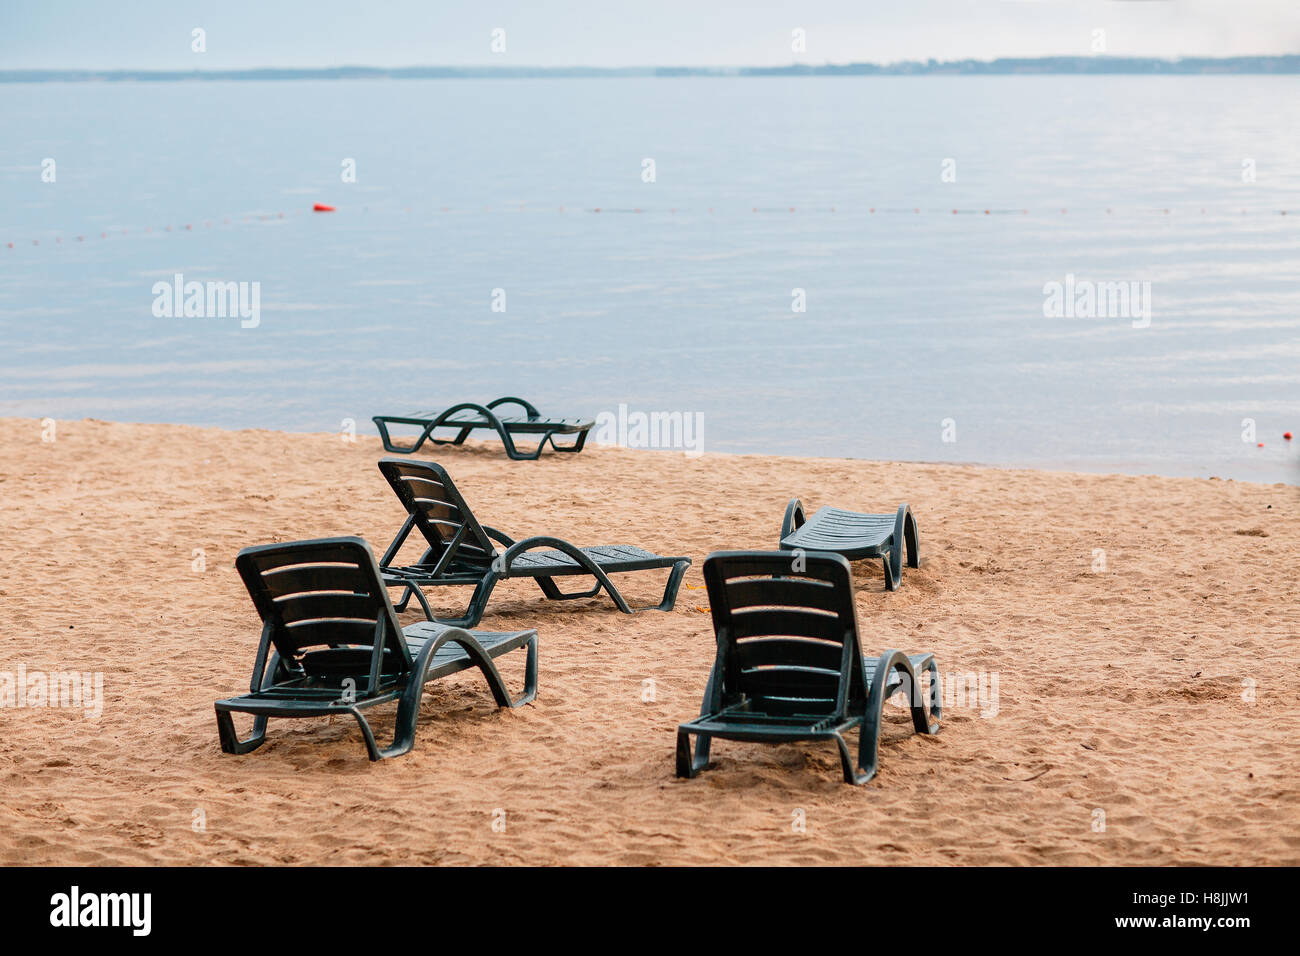 Sunbed on the beach after the rain. Mainly cloudy - Stock Image